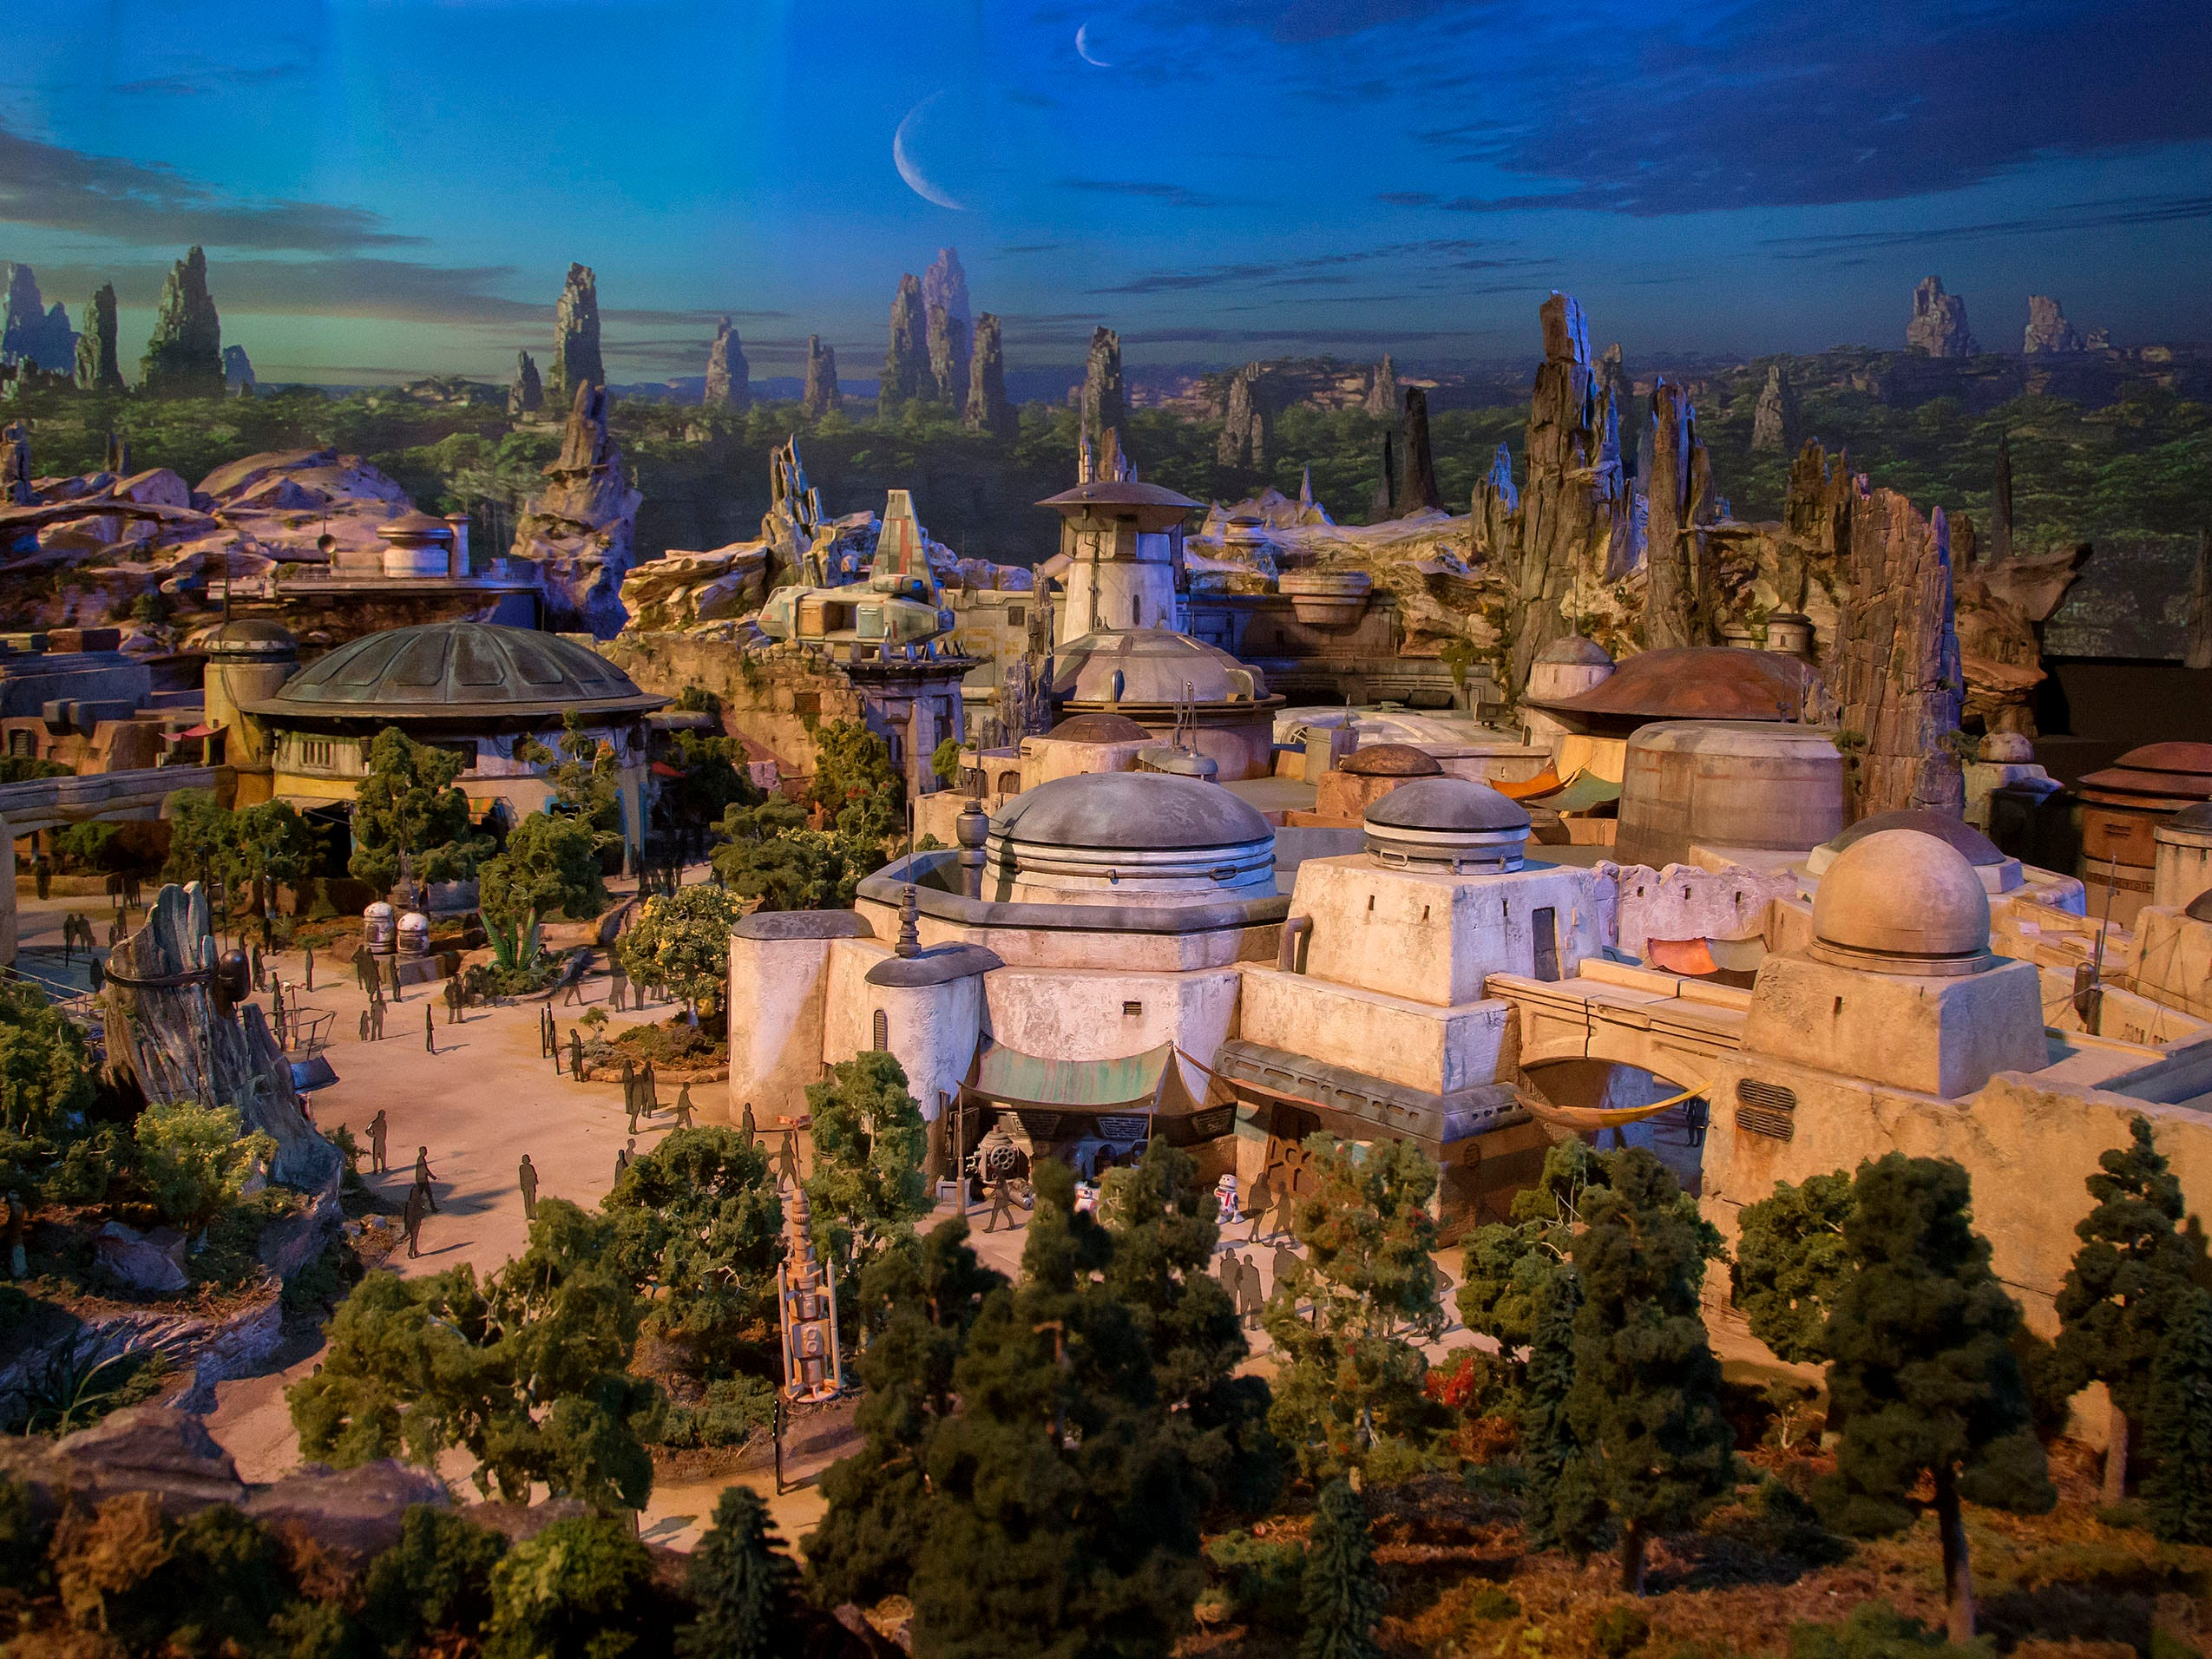 Two rides will headline the lavishly themed, nearly identical 14-acre Star Wars: Galaxy's Edge lands coming to both of Disney's U.S. resorts. Millennium Falcon: Smugglers Run will empower visitors to take control of Han Solo's famed hunk-of-junk starship, while Star Wars: Rise of the Resistance will place them on the front lines of a skirmish between the Resistance and the First Order.